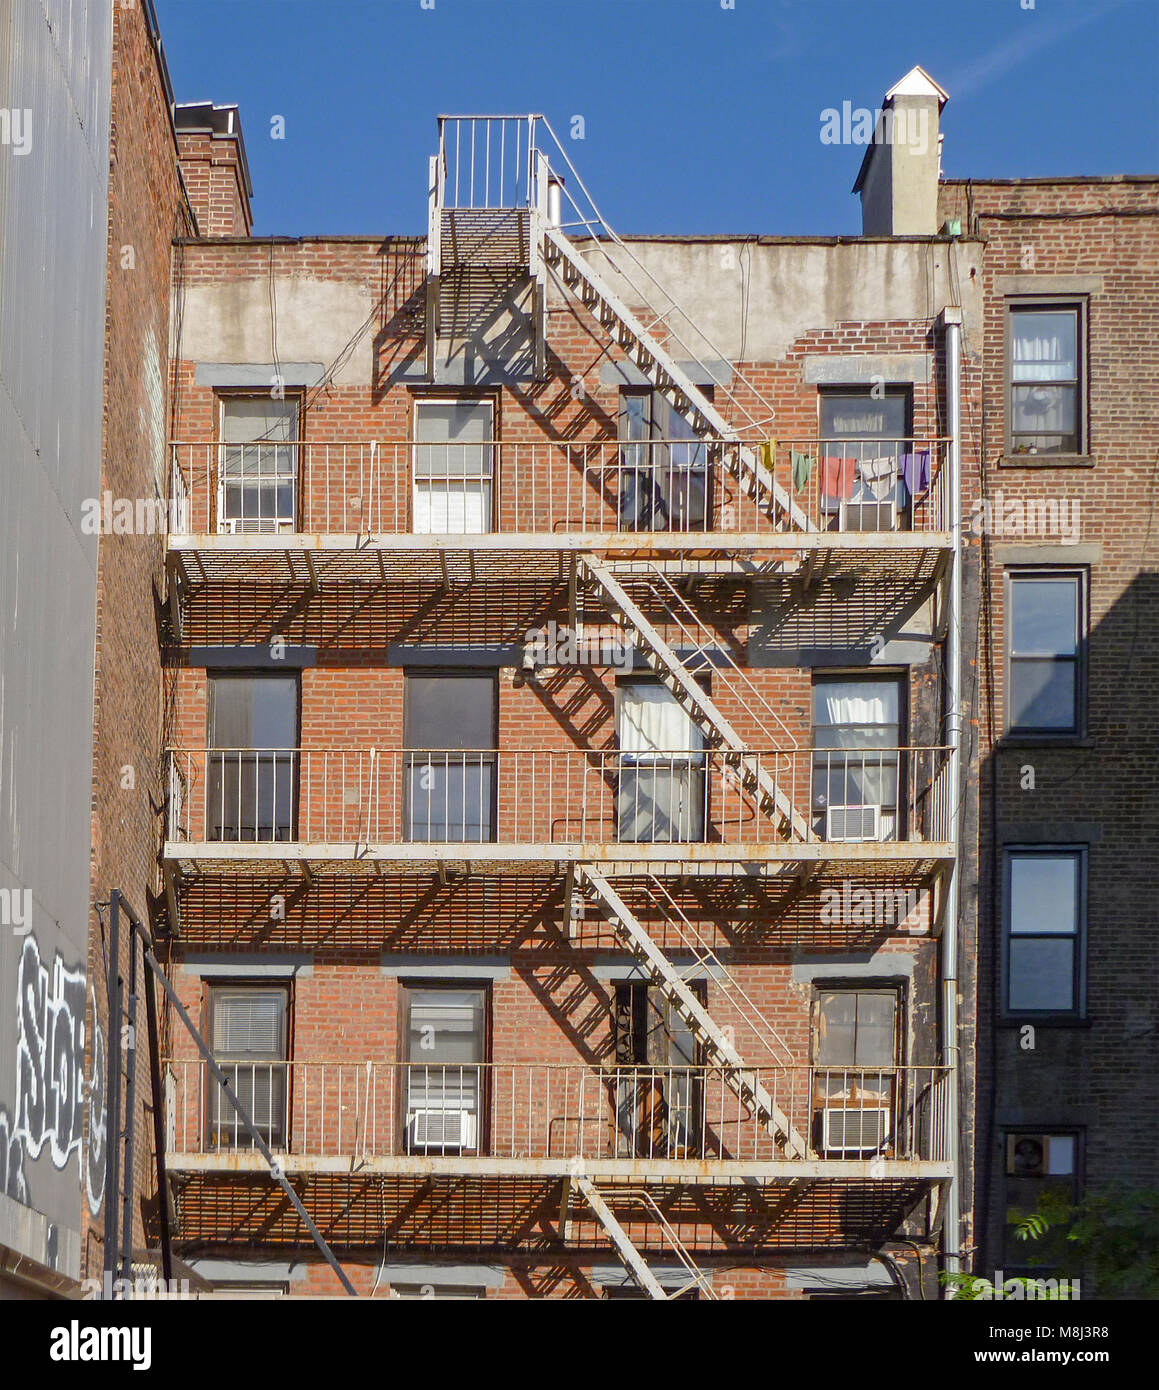 old tenement building nyc stock photos old tenement building nyc stock images alamy. Black Bedroom Furniture Sets. Home Design Ideas